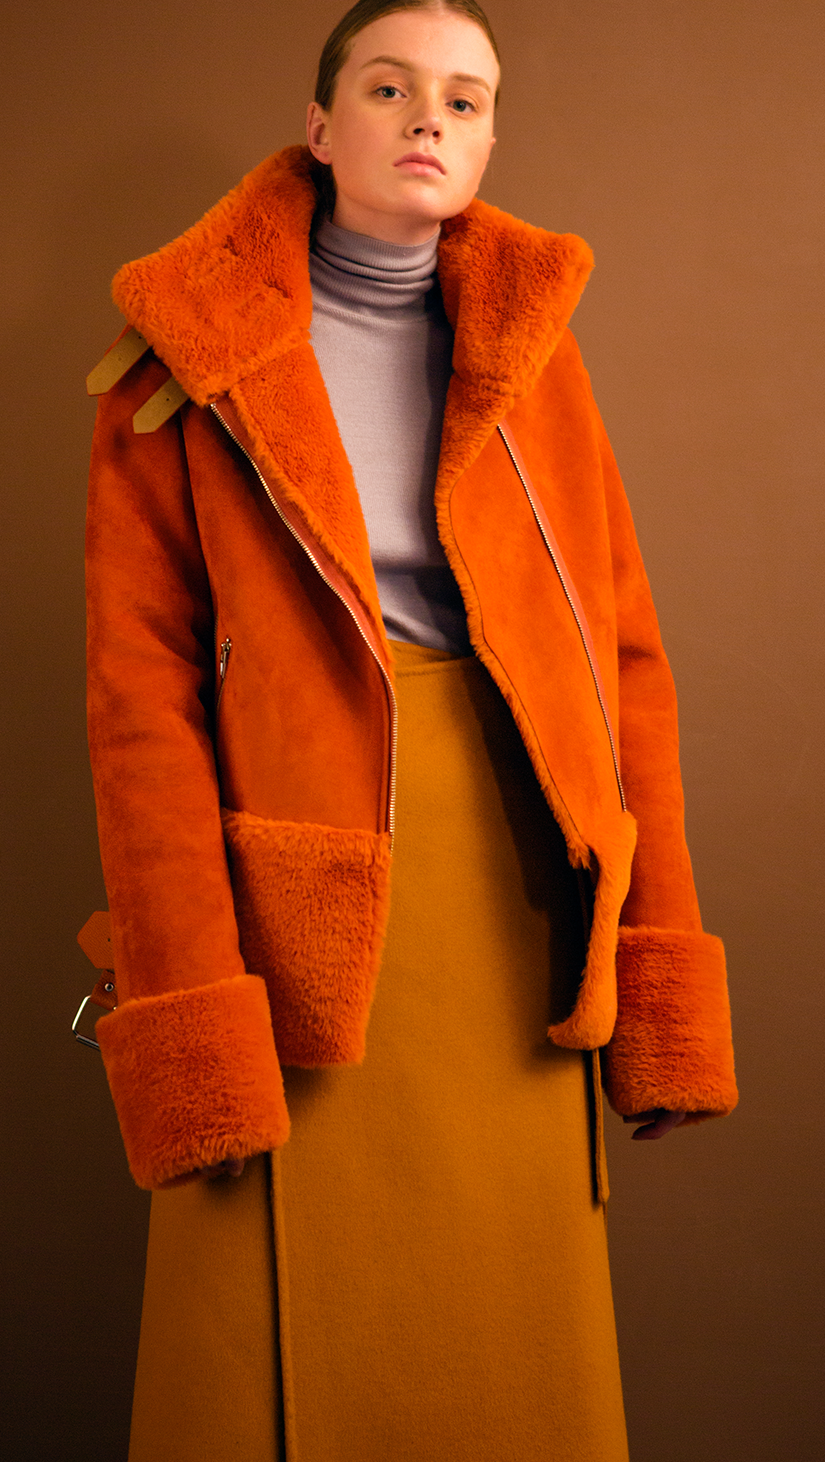 Moto-style suede shearling jacket fully lined in orange shearling. Super soft in suede, dropped shoulder, extra long sleeves with soft shearling detail at cuffs, front zip pockets, gusseted back panel, belt at waist with bucket closure, zip closure with attached wide belt in belt loops, Medium-weight. Fully lined. Oversized. Relaxed silhouette.